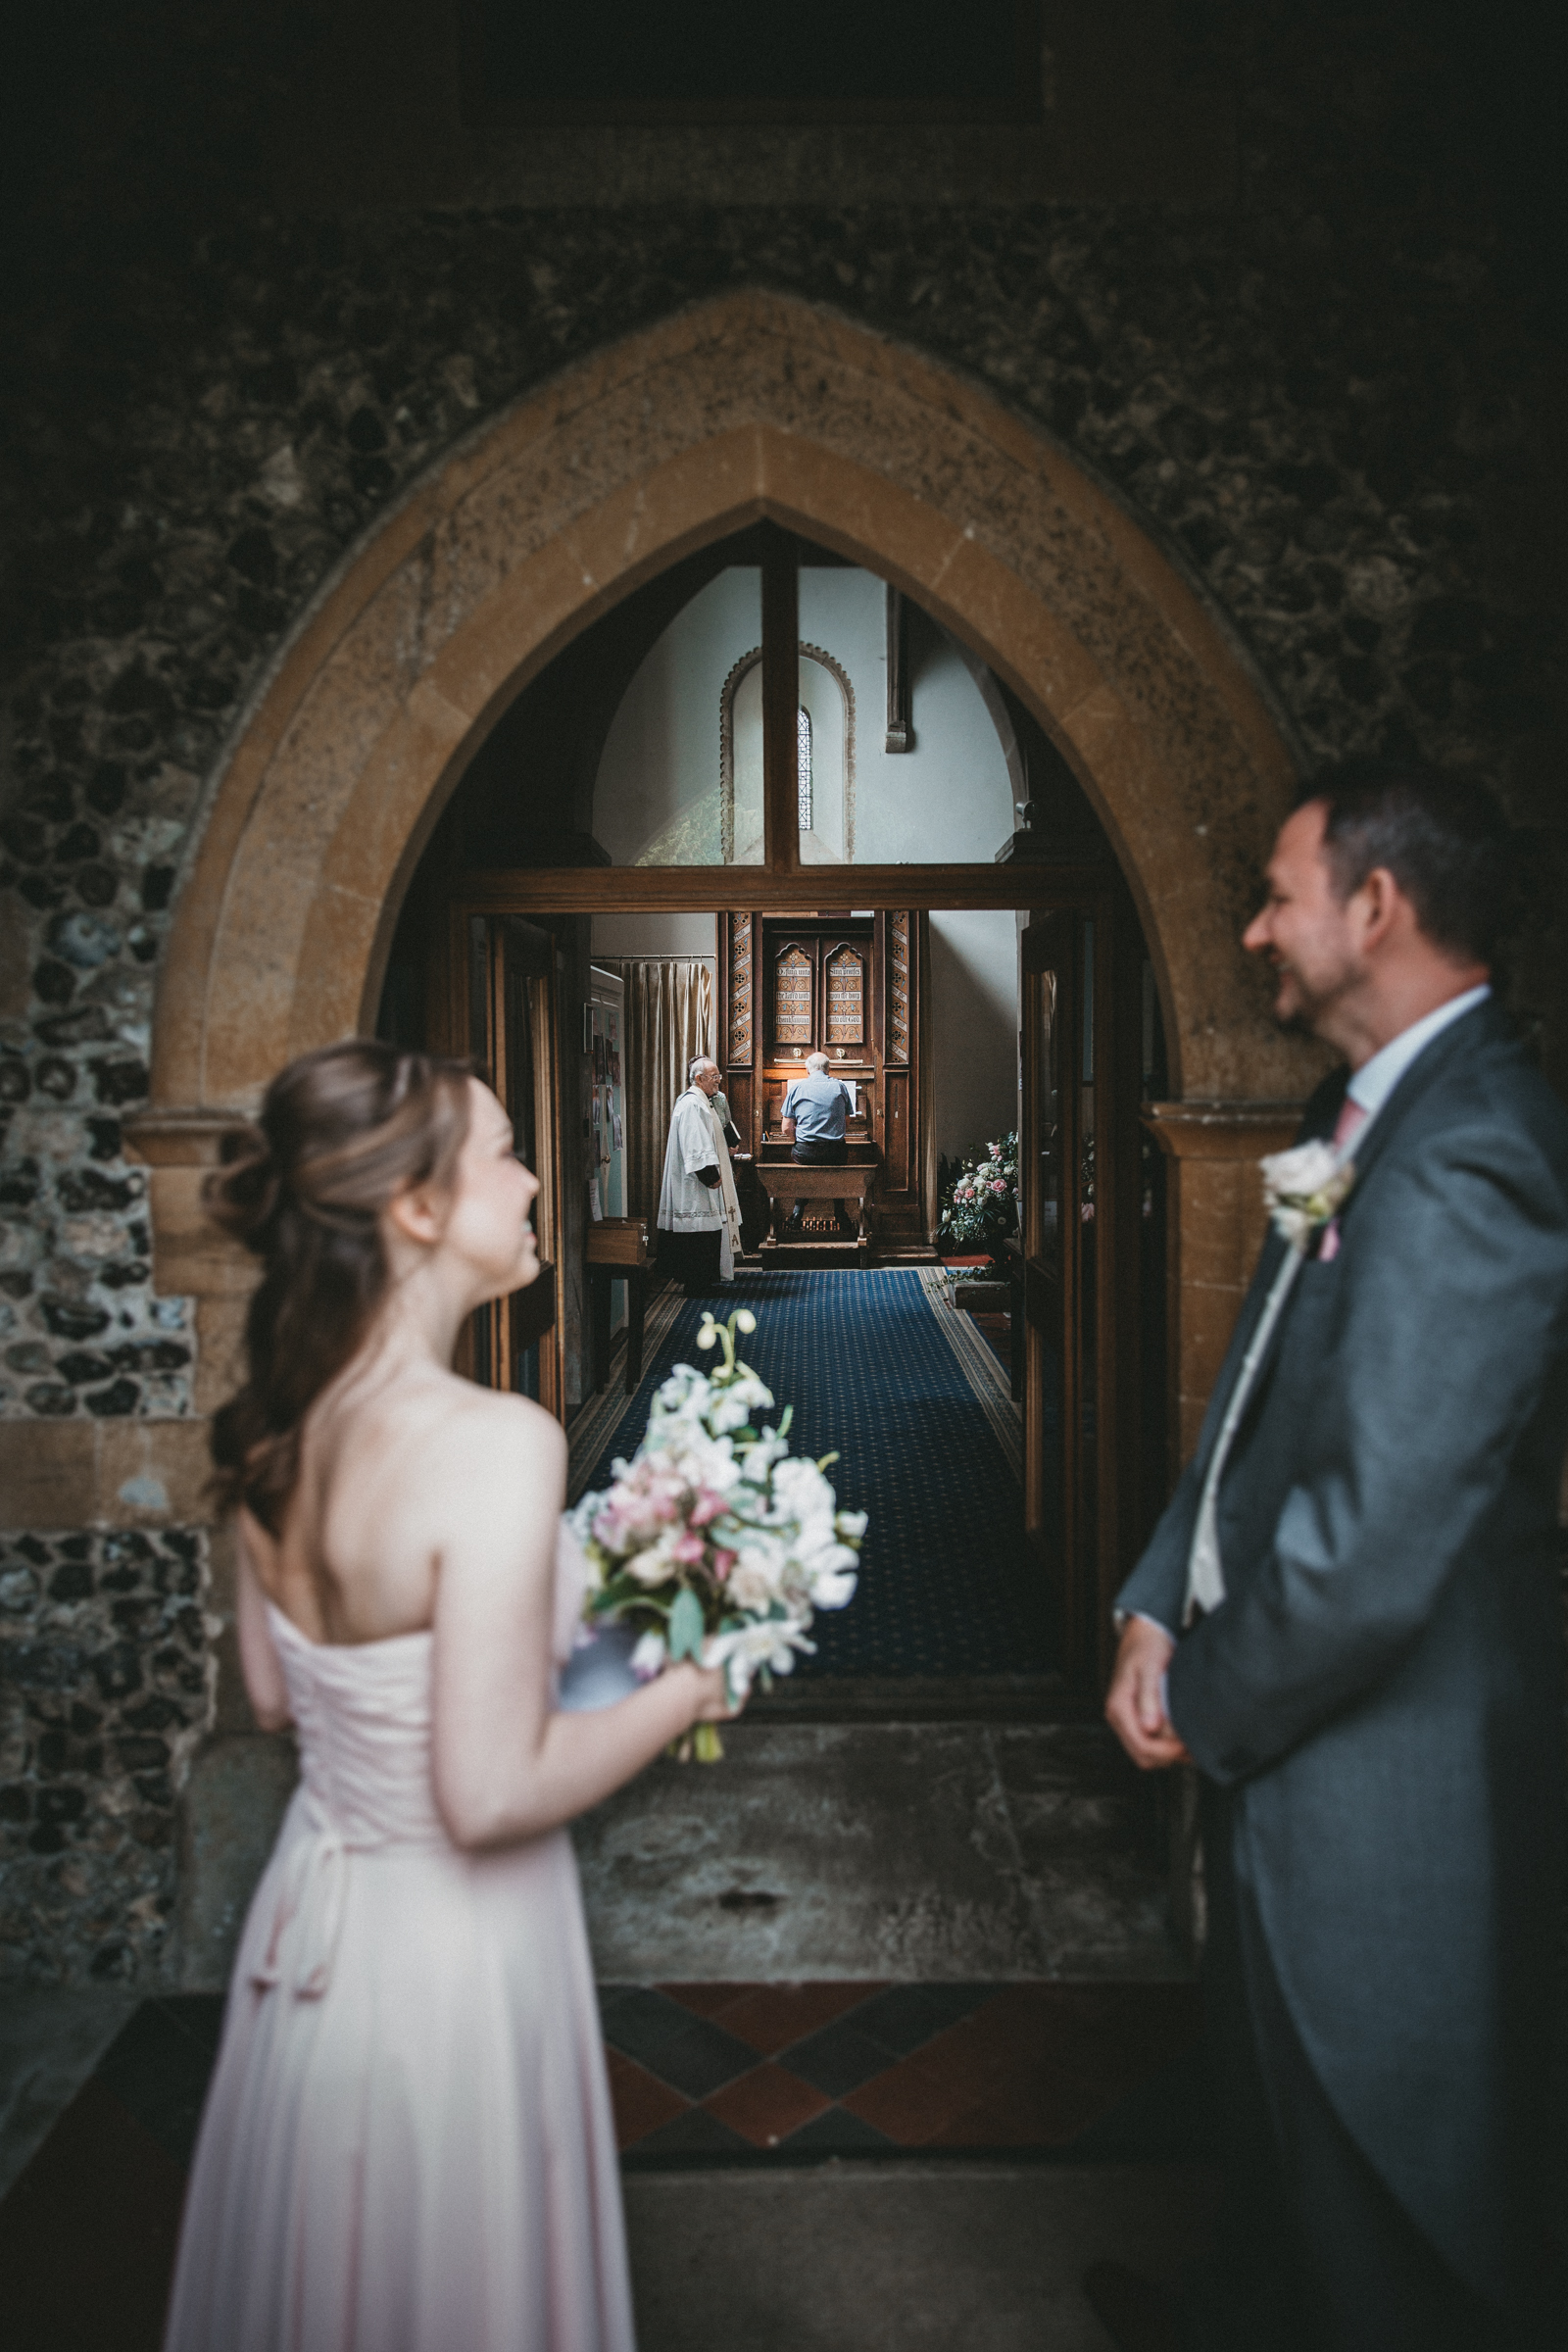 Chris Bradshaw Wedding Photography - Simon & Amanda Wedding Photos-36